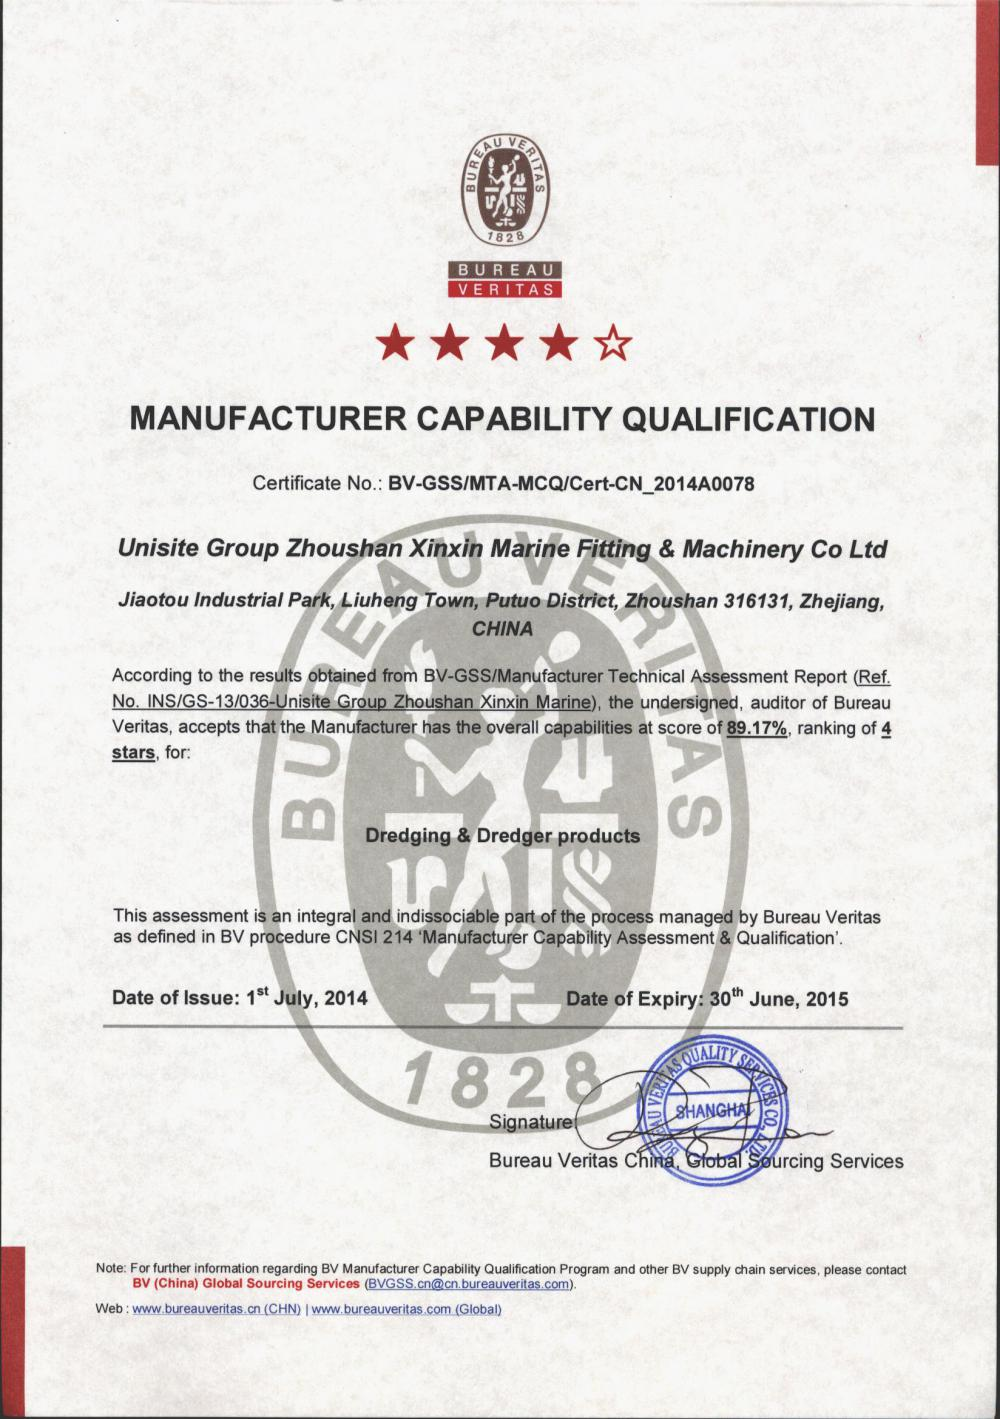 MANUFACTURER CAPABILITY QUALIFICATION